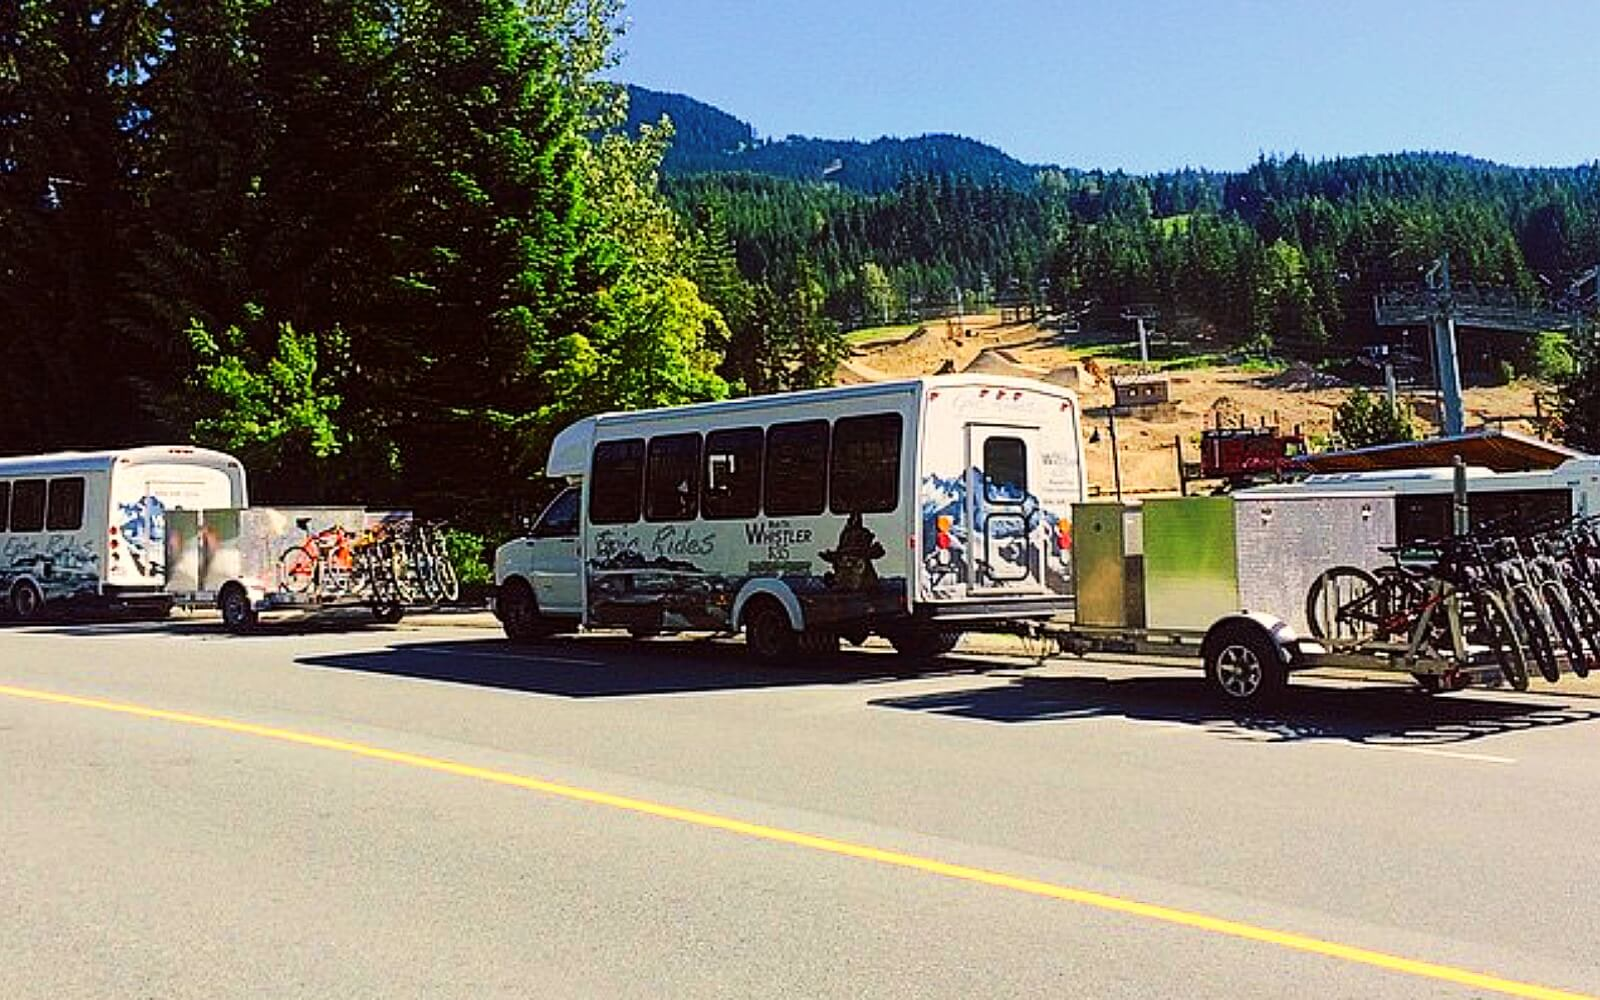 The Epic Rides shuttle enters Whistler